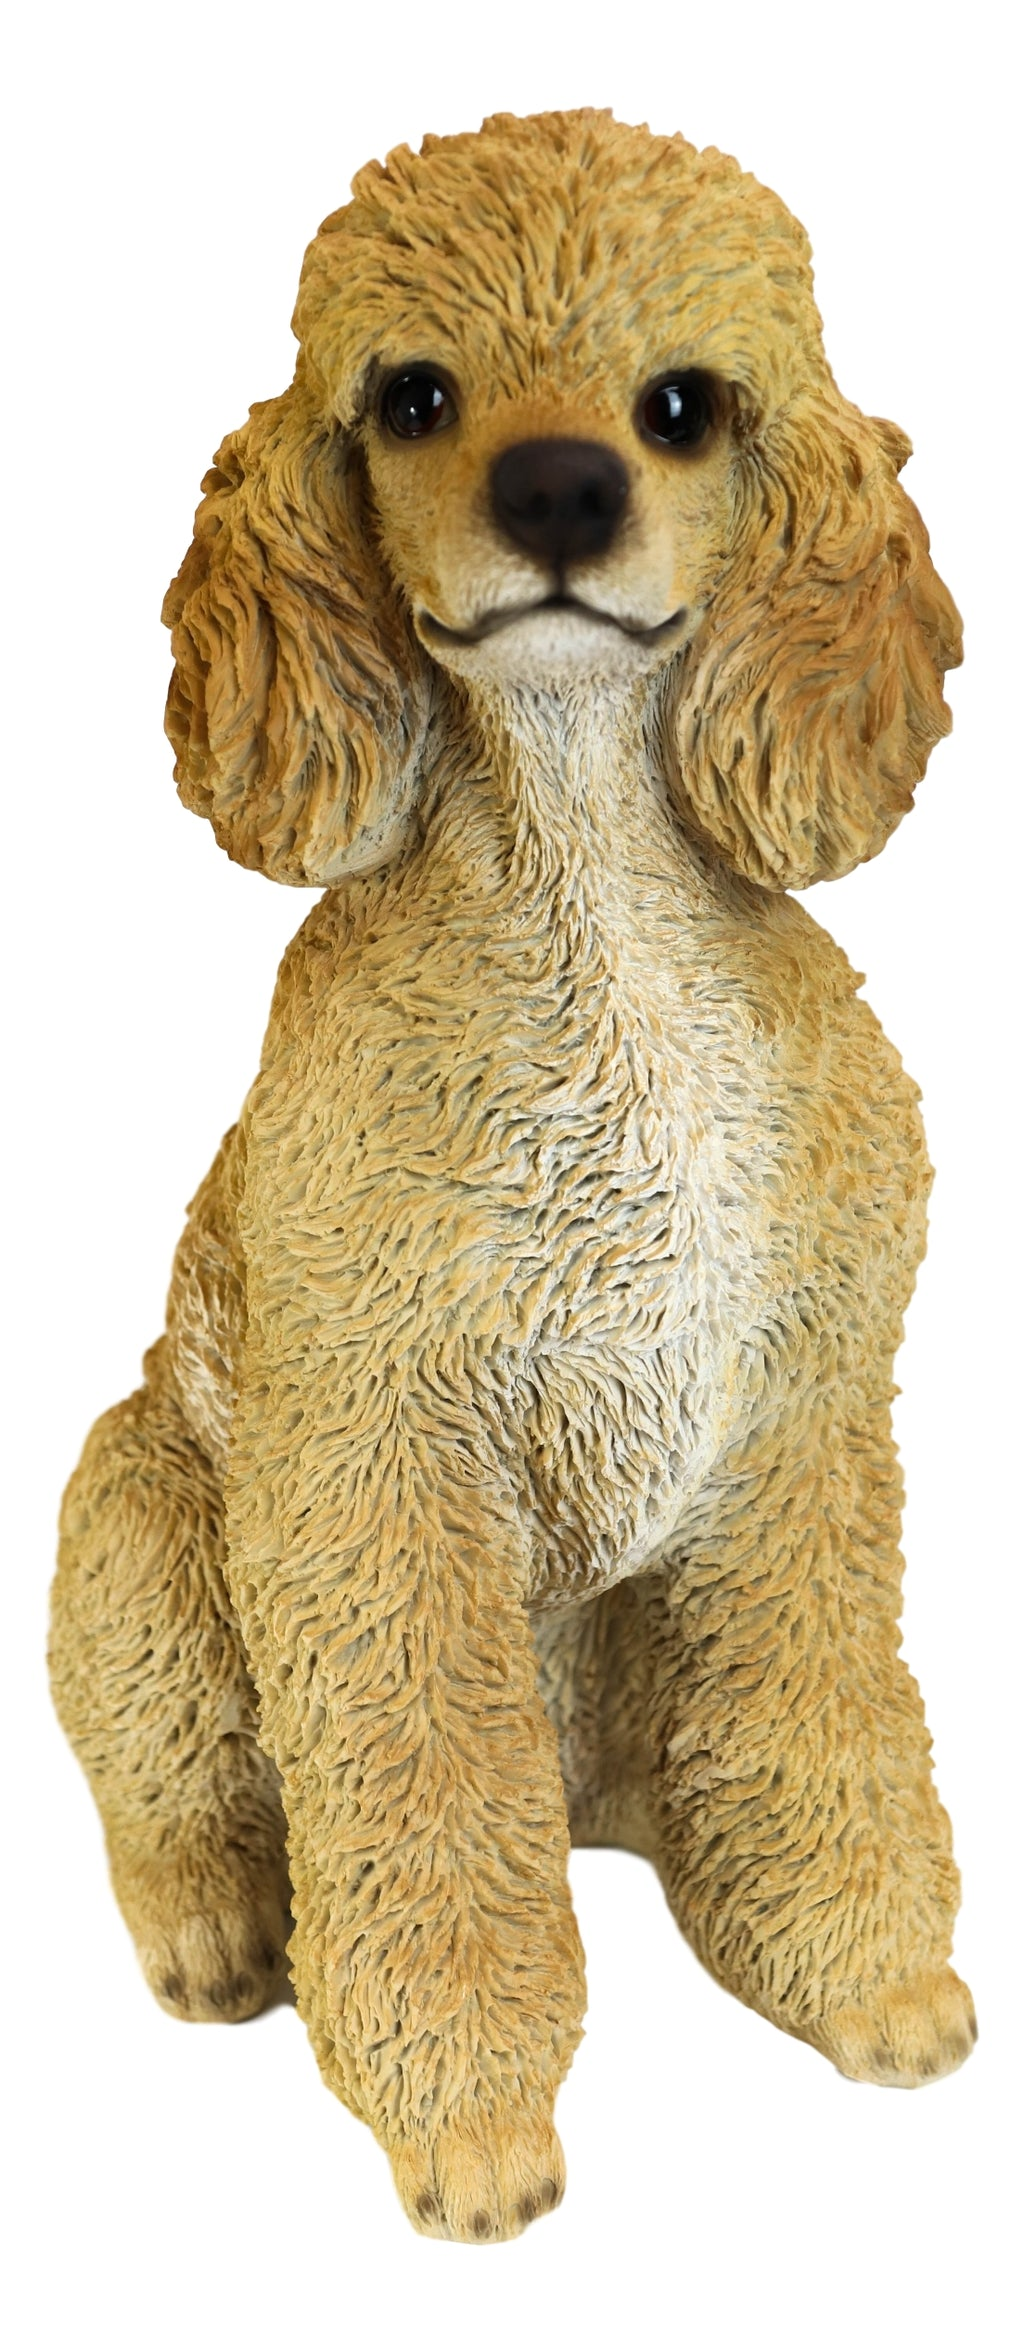 Large Realistic Groomed Brown Poodle Statue 18 5 H Animal Pet Pal Pood Ebros Gift